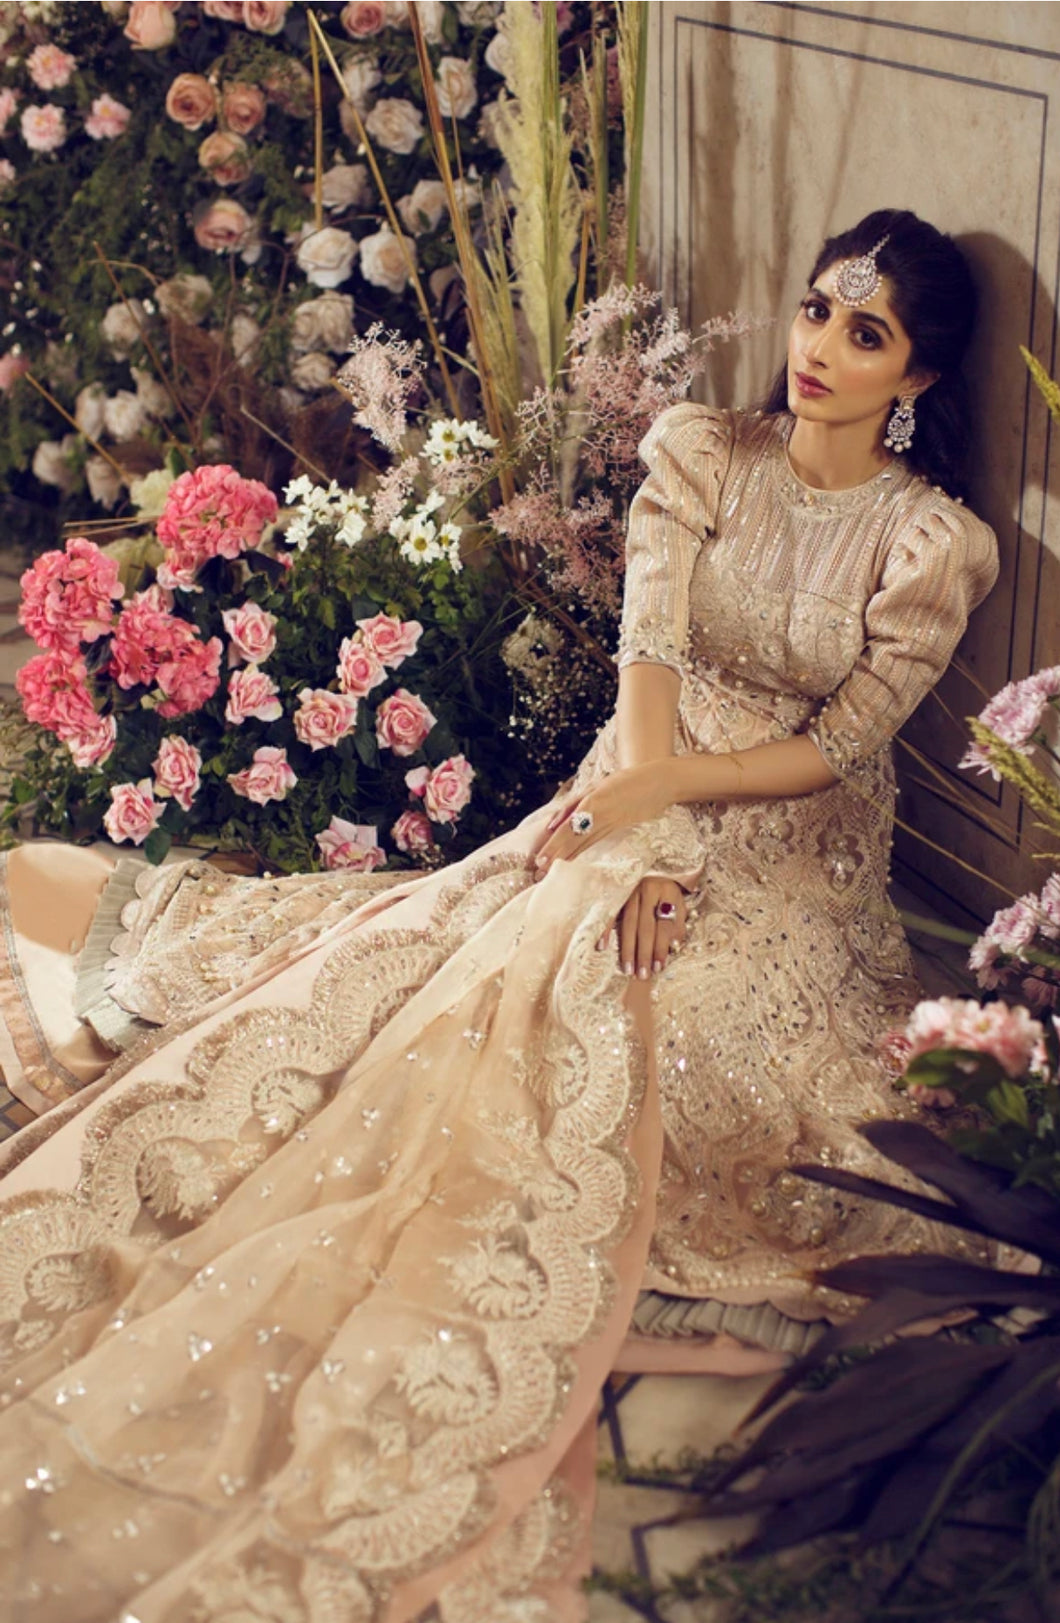 ELAN WEDDING FESTIVE 2020 - FERAY BRIDAL CREAM WHITE | PAKISTANI WEDDING DRESSES & READY MADE PAKISTANI CLOTHES UK. Designer Collection Original & Stitched. Buy READY MADE PAKISTANI CLOTHES UK, Pakistani BRIDAL DRESSES & PARTY WEAR OUTFITS AT LEBAASONLINE. Next Day Delivery in the UK, USA, France, Germany & London